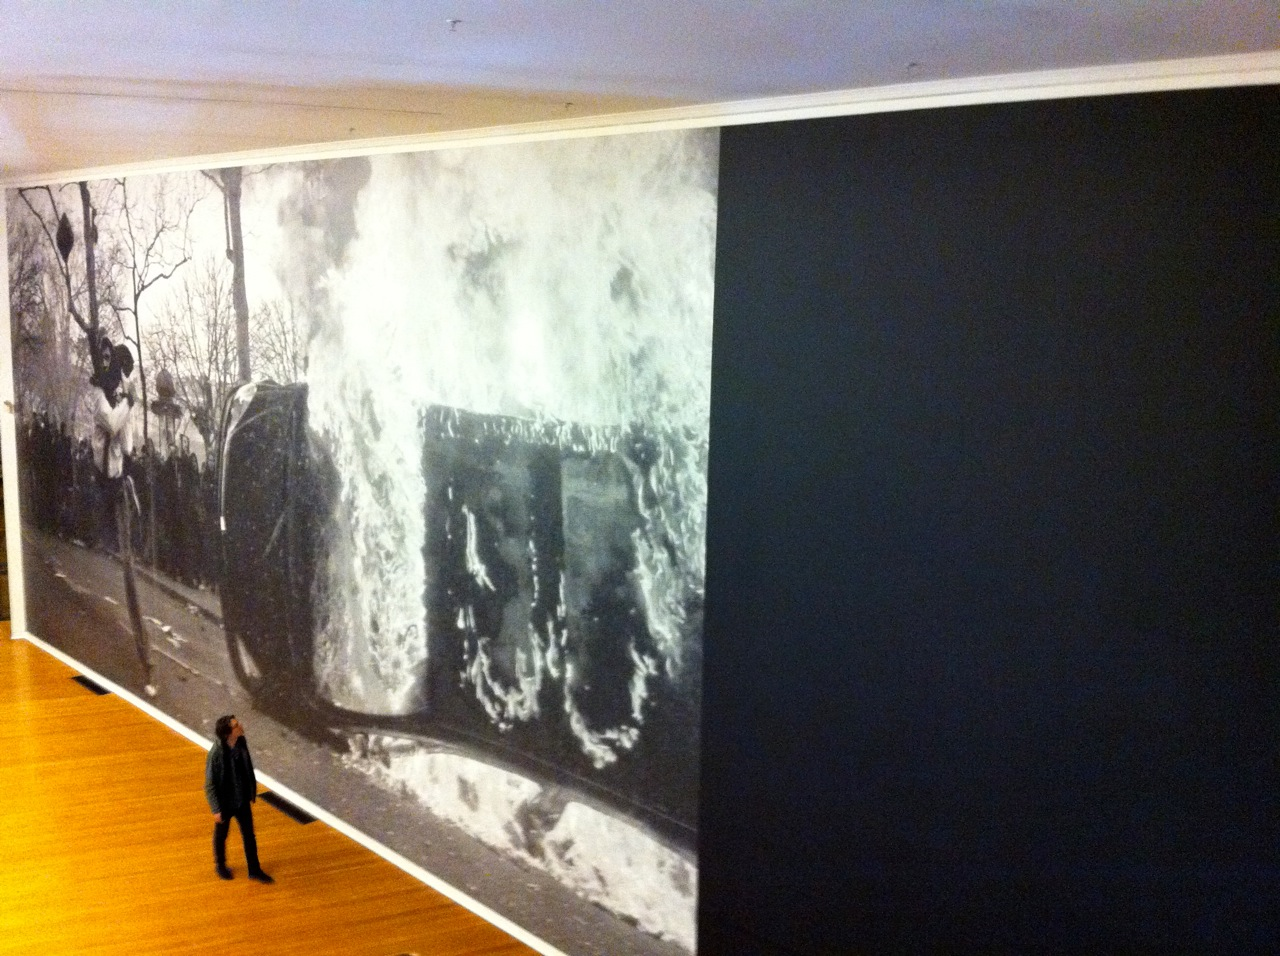 New large scale piece by Marco Fusinato